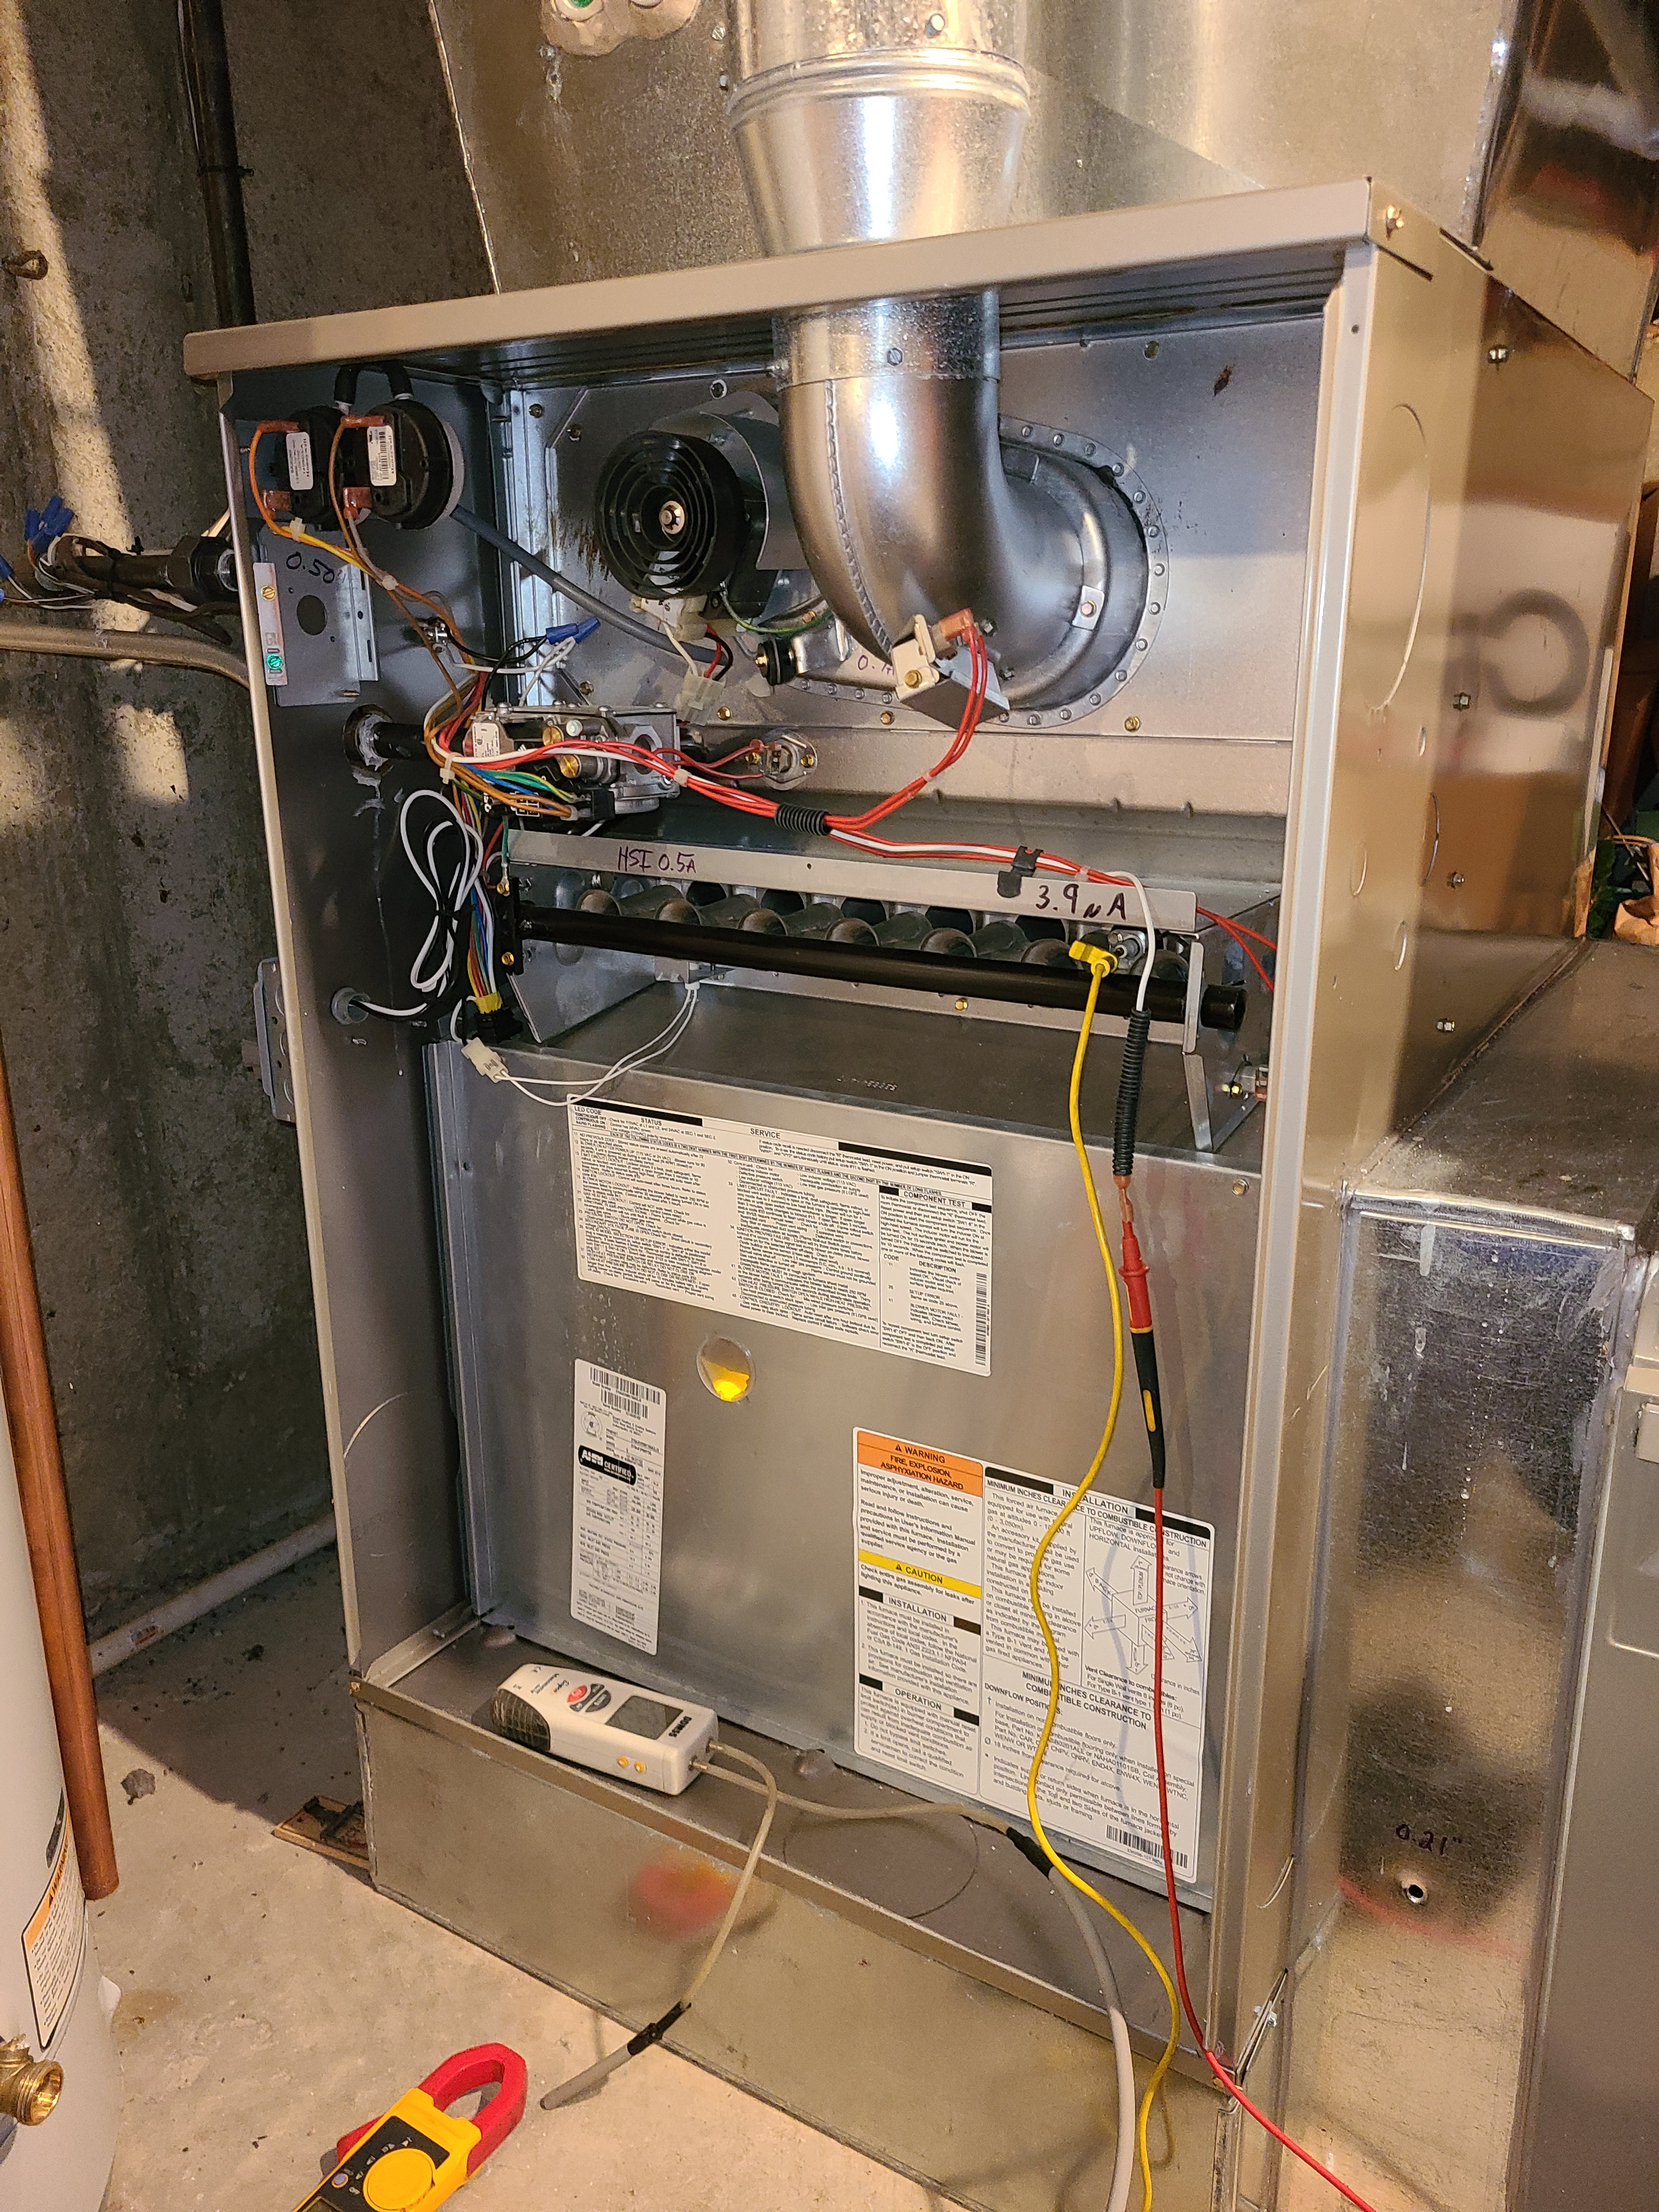 Bryant furnace fall clean and check. System tuned up and ready for winter.